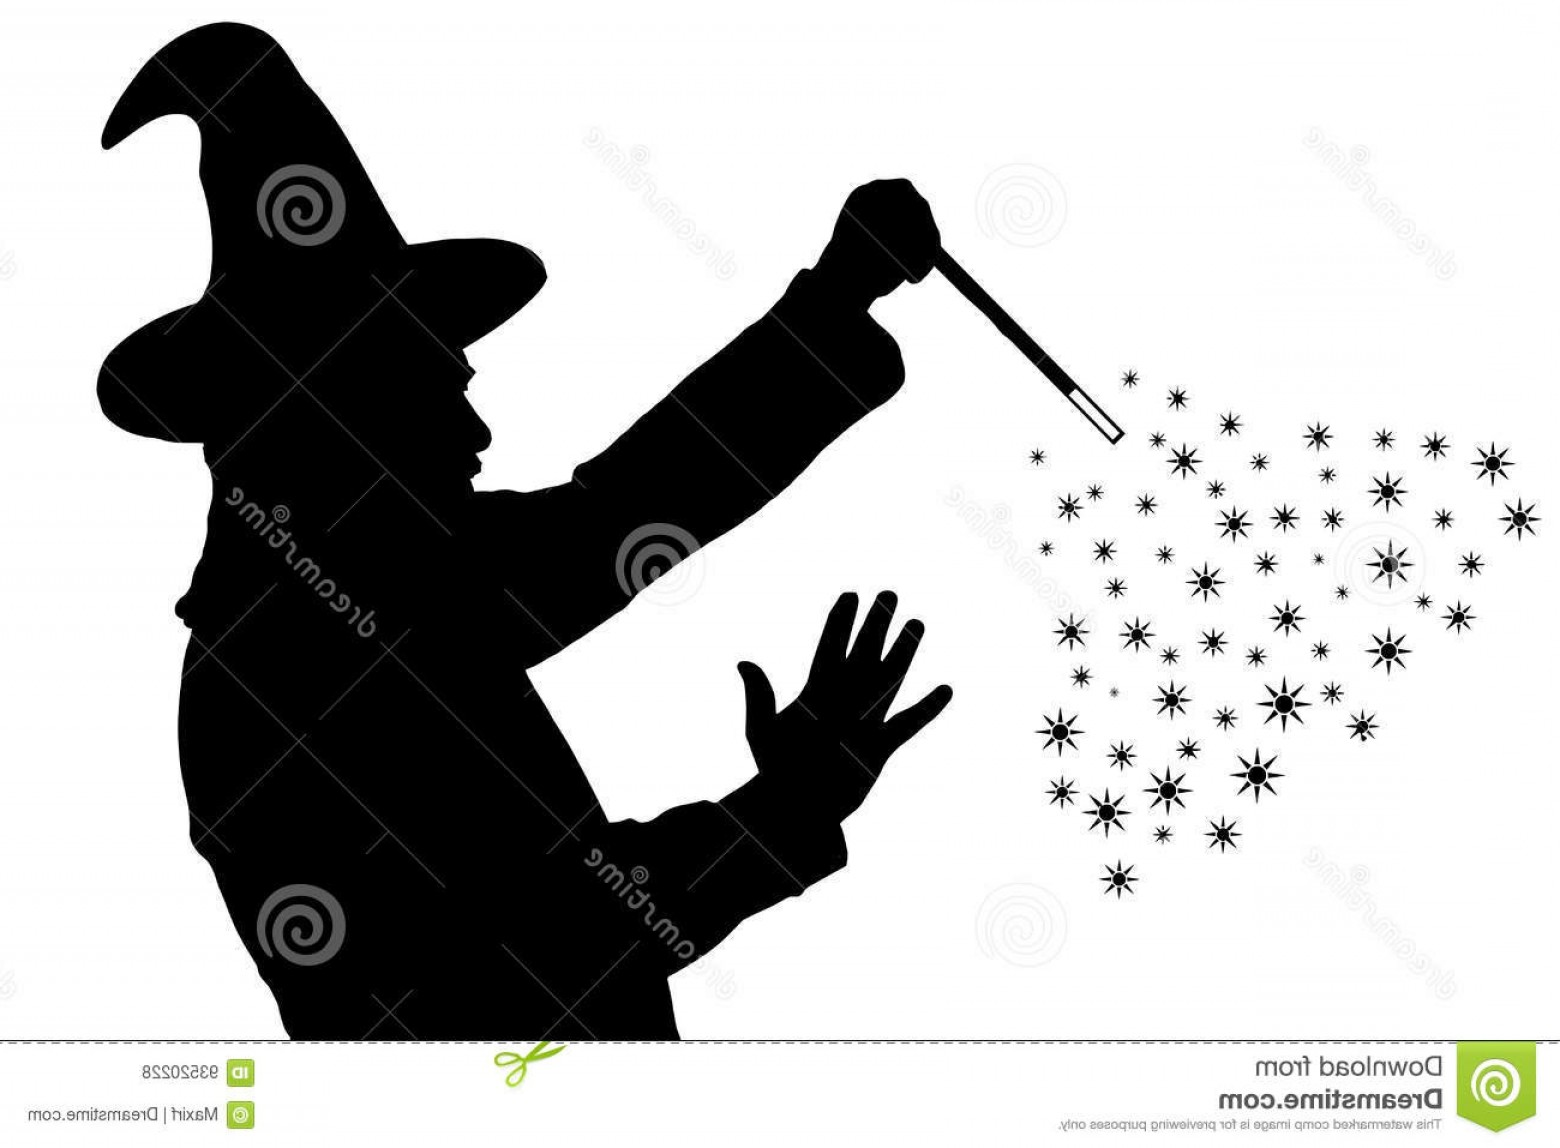 Wizard Silhouette Vector: Stock Illustration Silhouette Bearded Wizard Cloak Pointed Hat Creating Magic Image